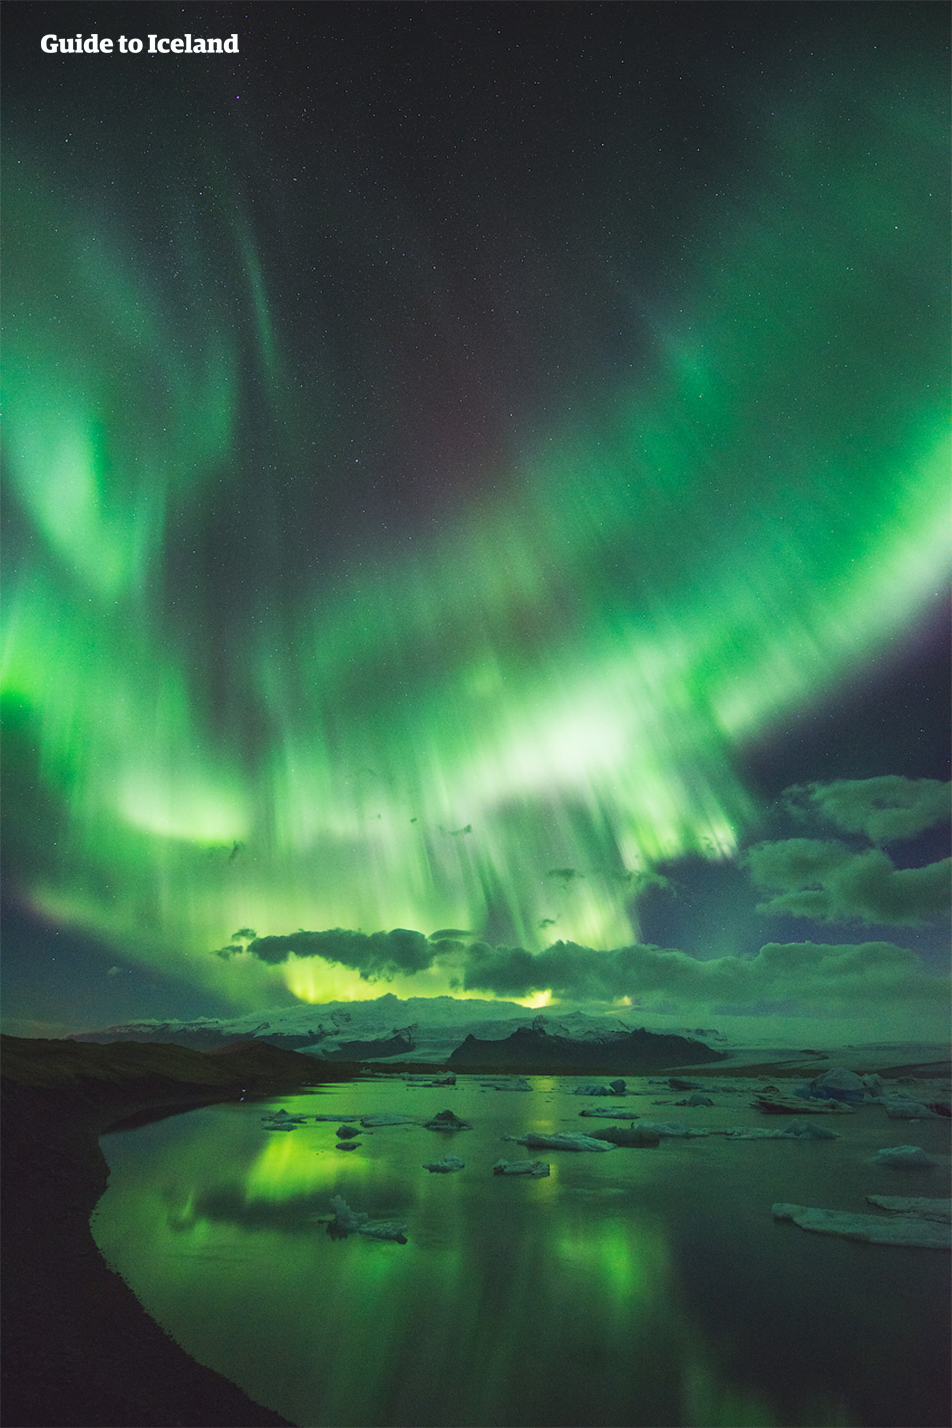 Jökulsárlón is a perfect place for Northern Lights photography.